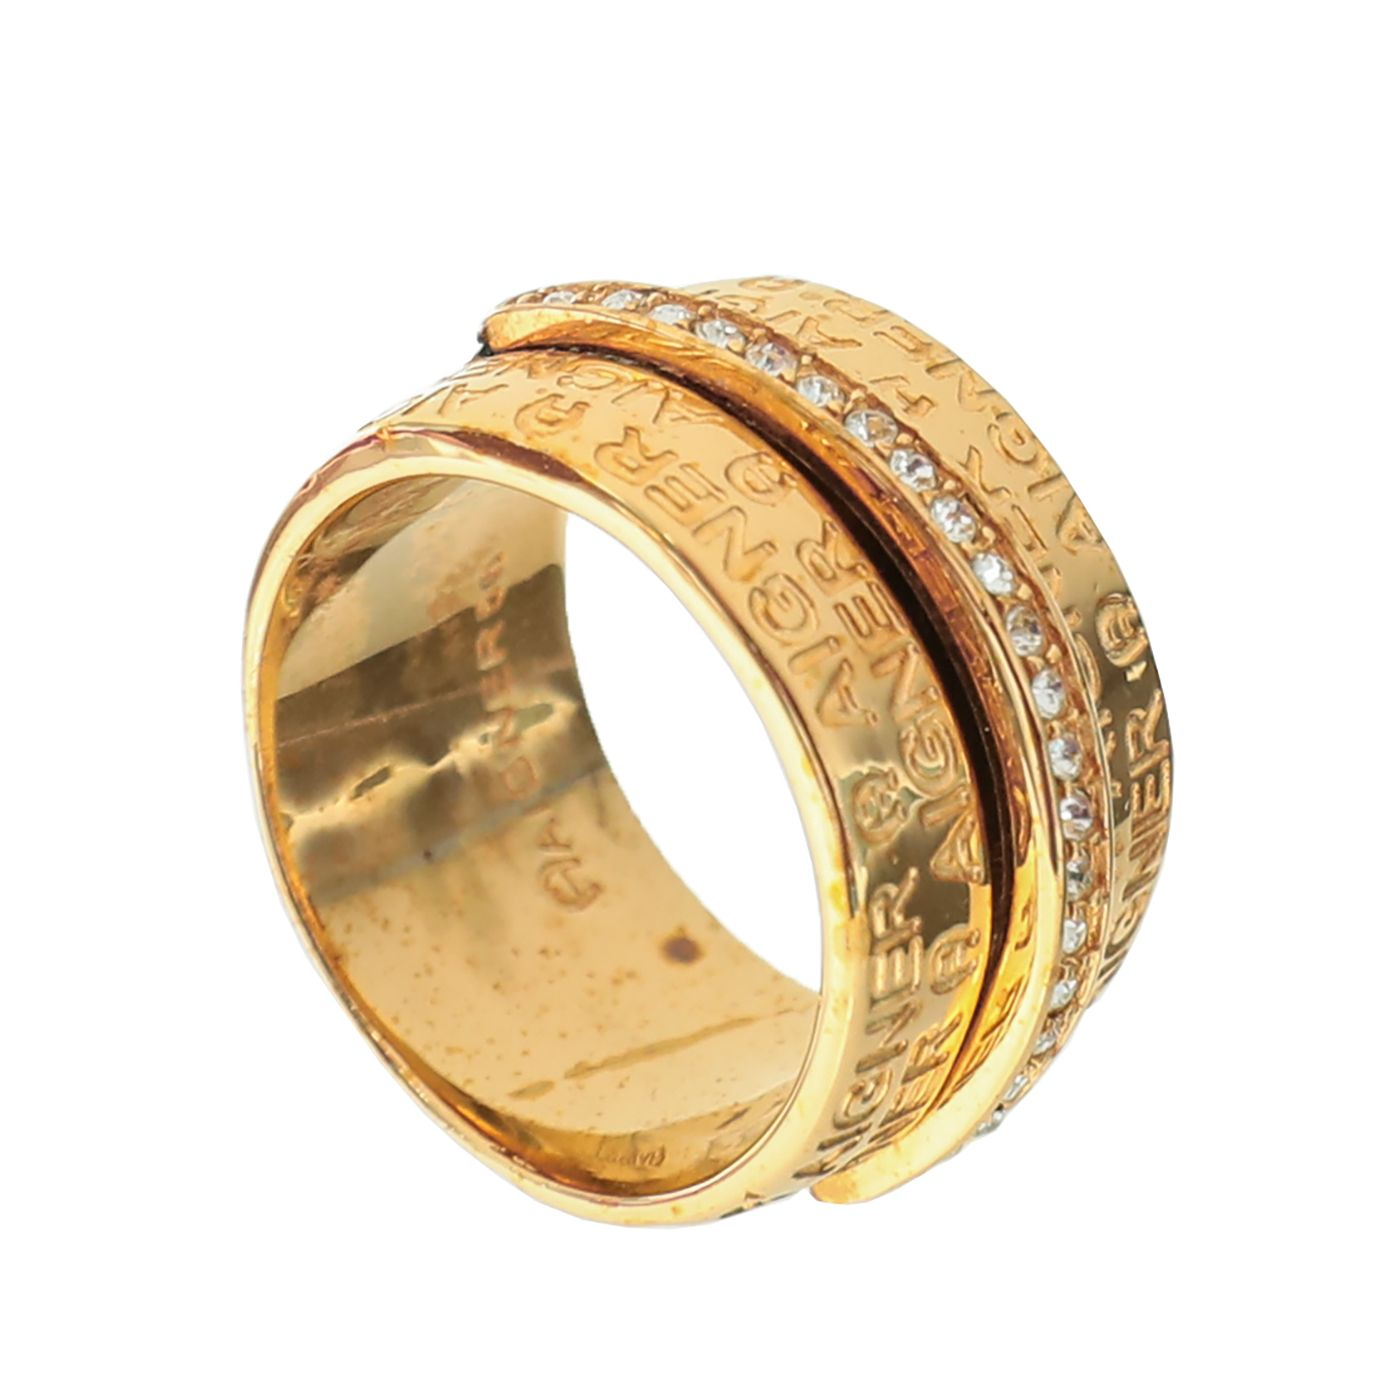 Aigner Gold with Rhinestones Ring 56